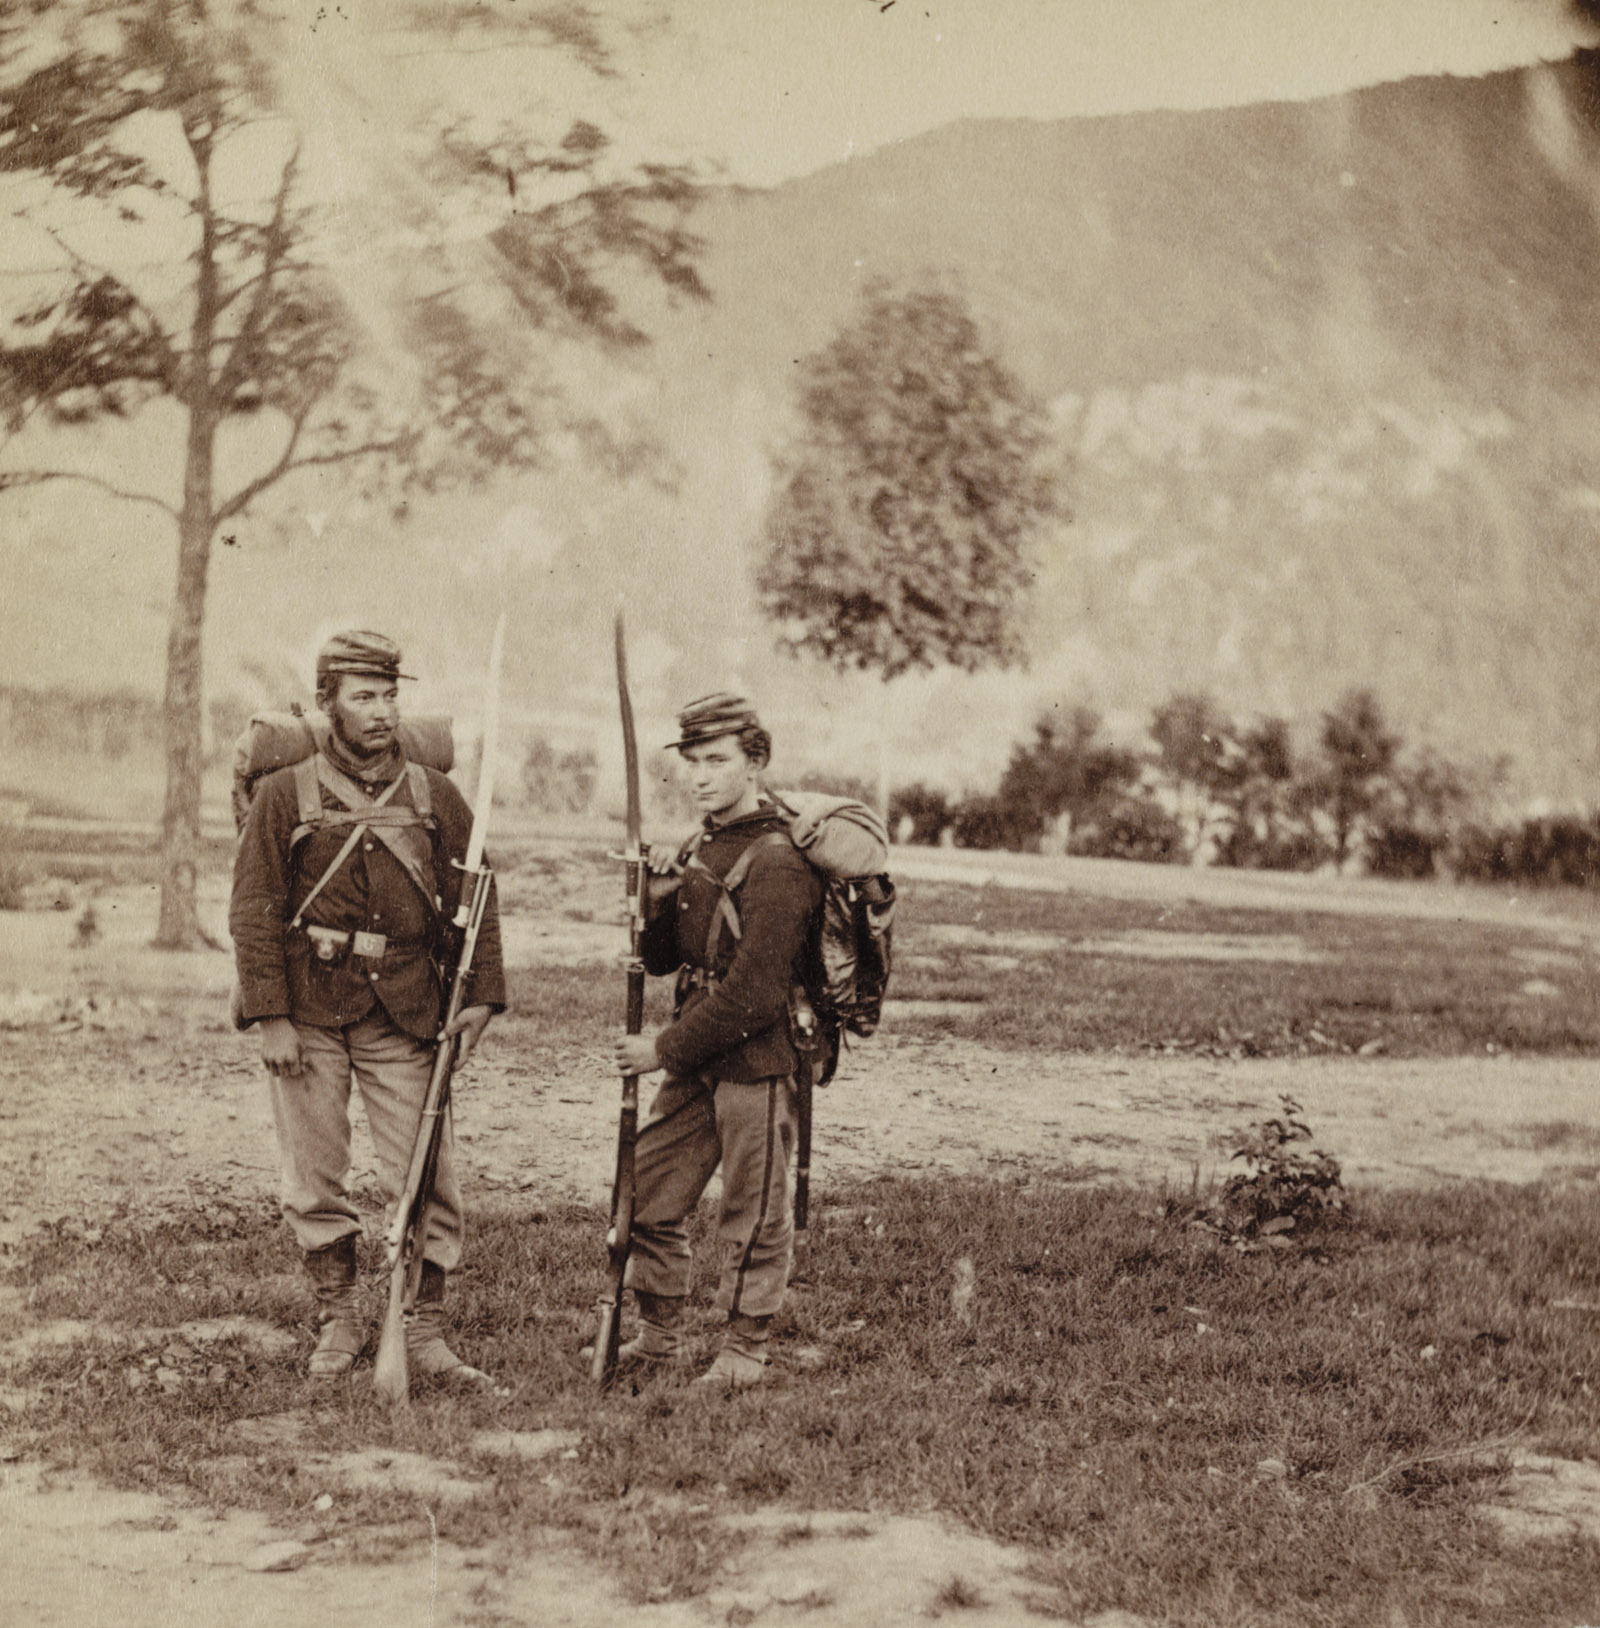 Soldiers from the 22nd New York State Militia near Harpers Ferry, Virginia, 1862